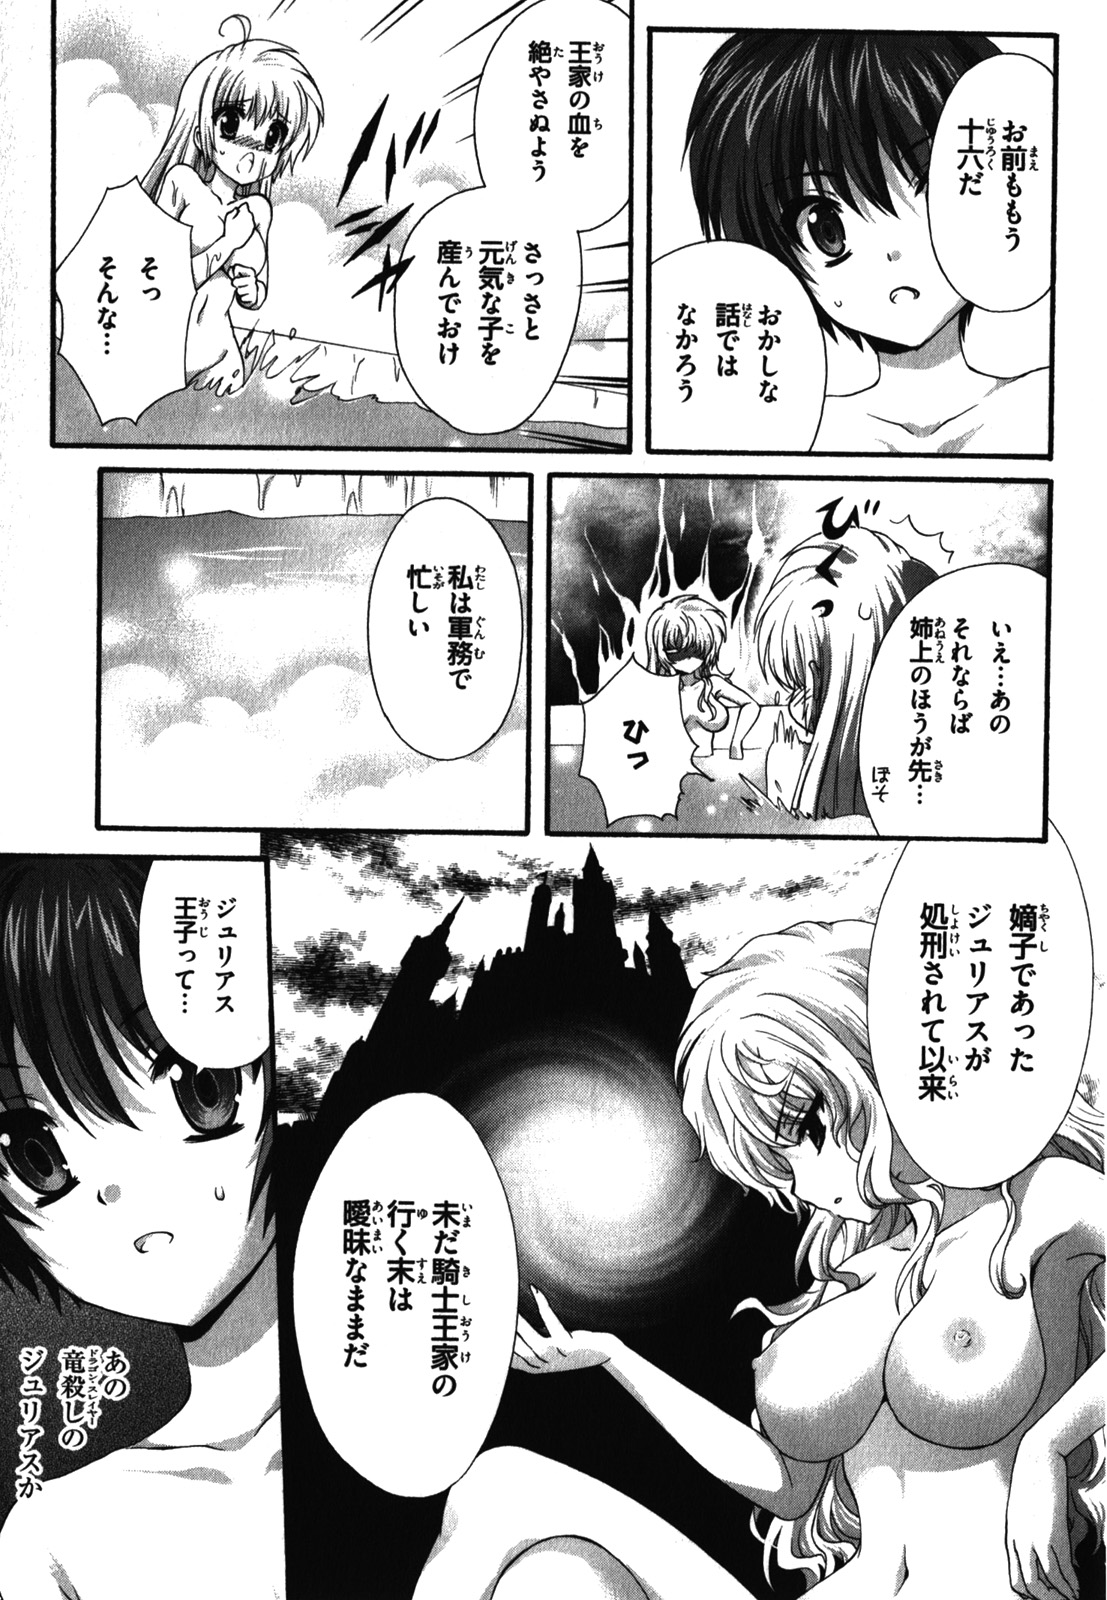 Dragonar-Academy-vol.2 (19)